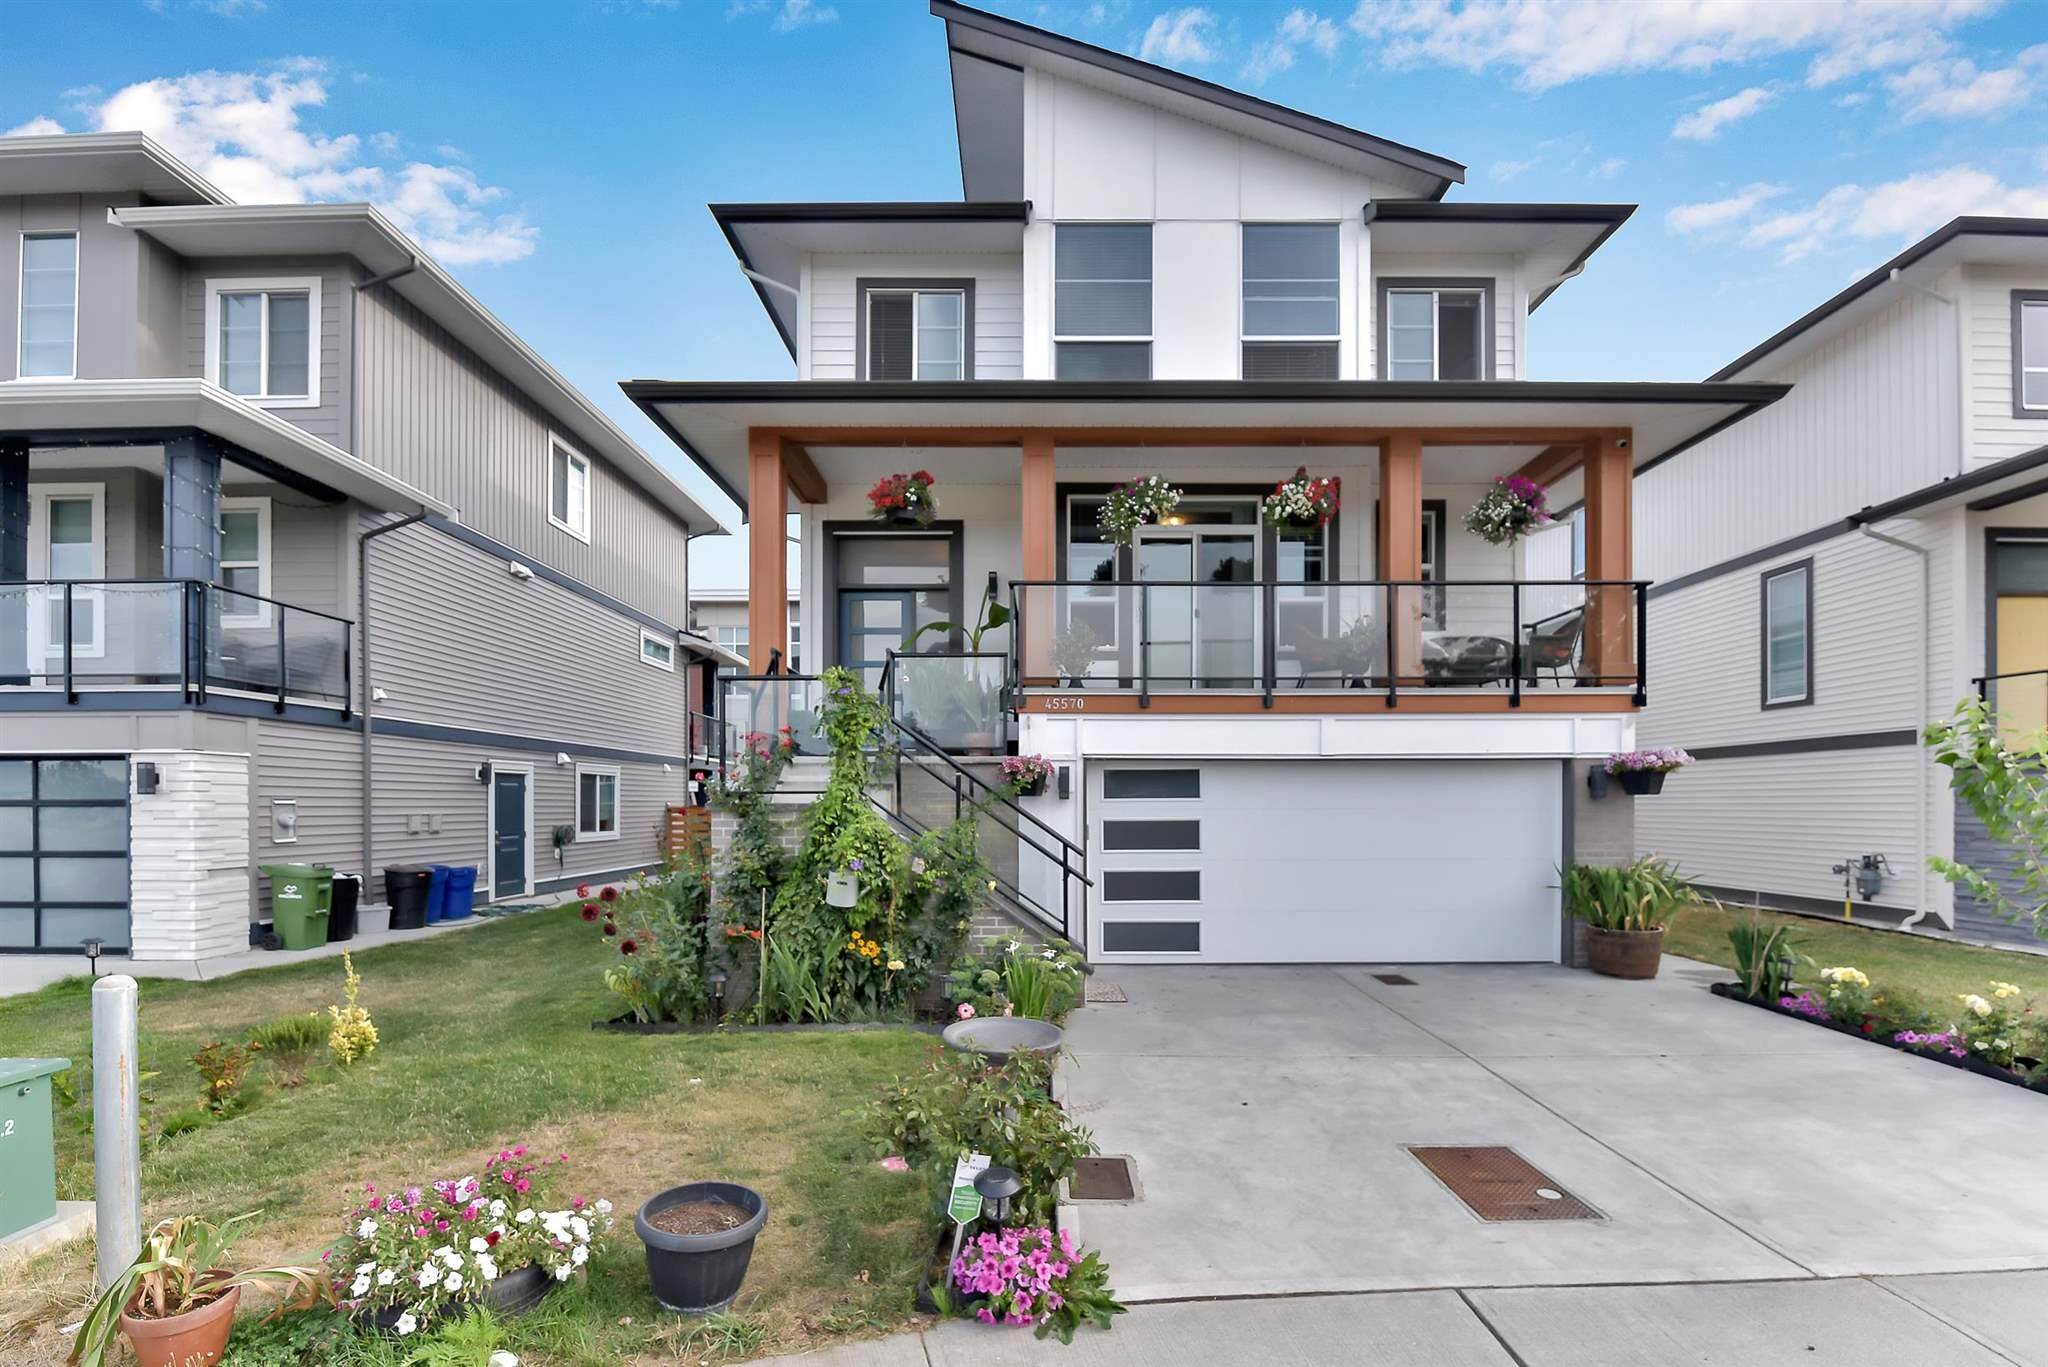 Main Photo: 45570 MEADOWBROOK Drive in Chilliwack: Chilliwack W Young-Well House for sale : MLS®# R2607625